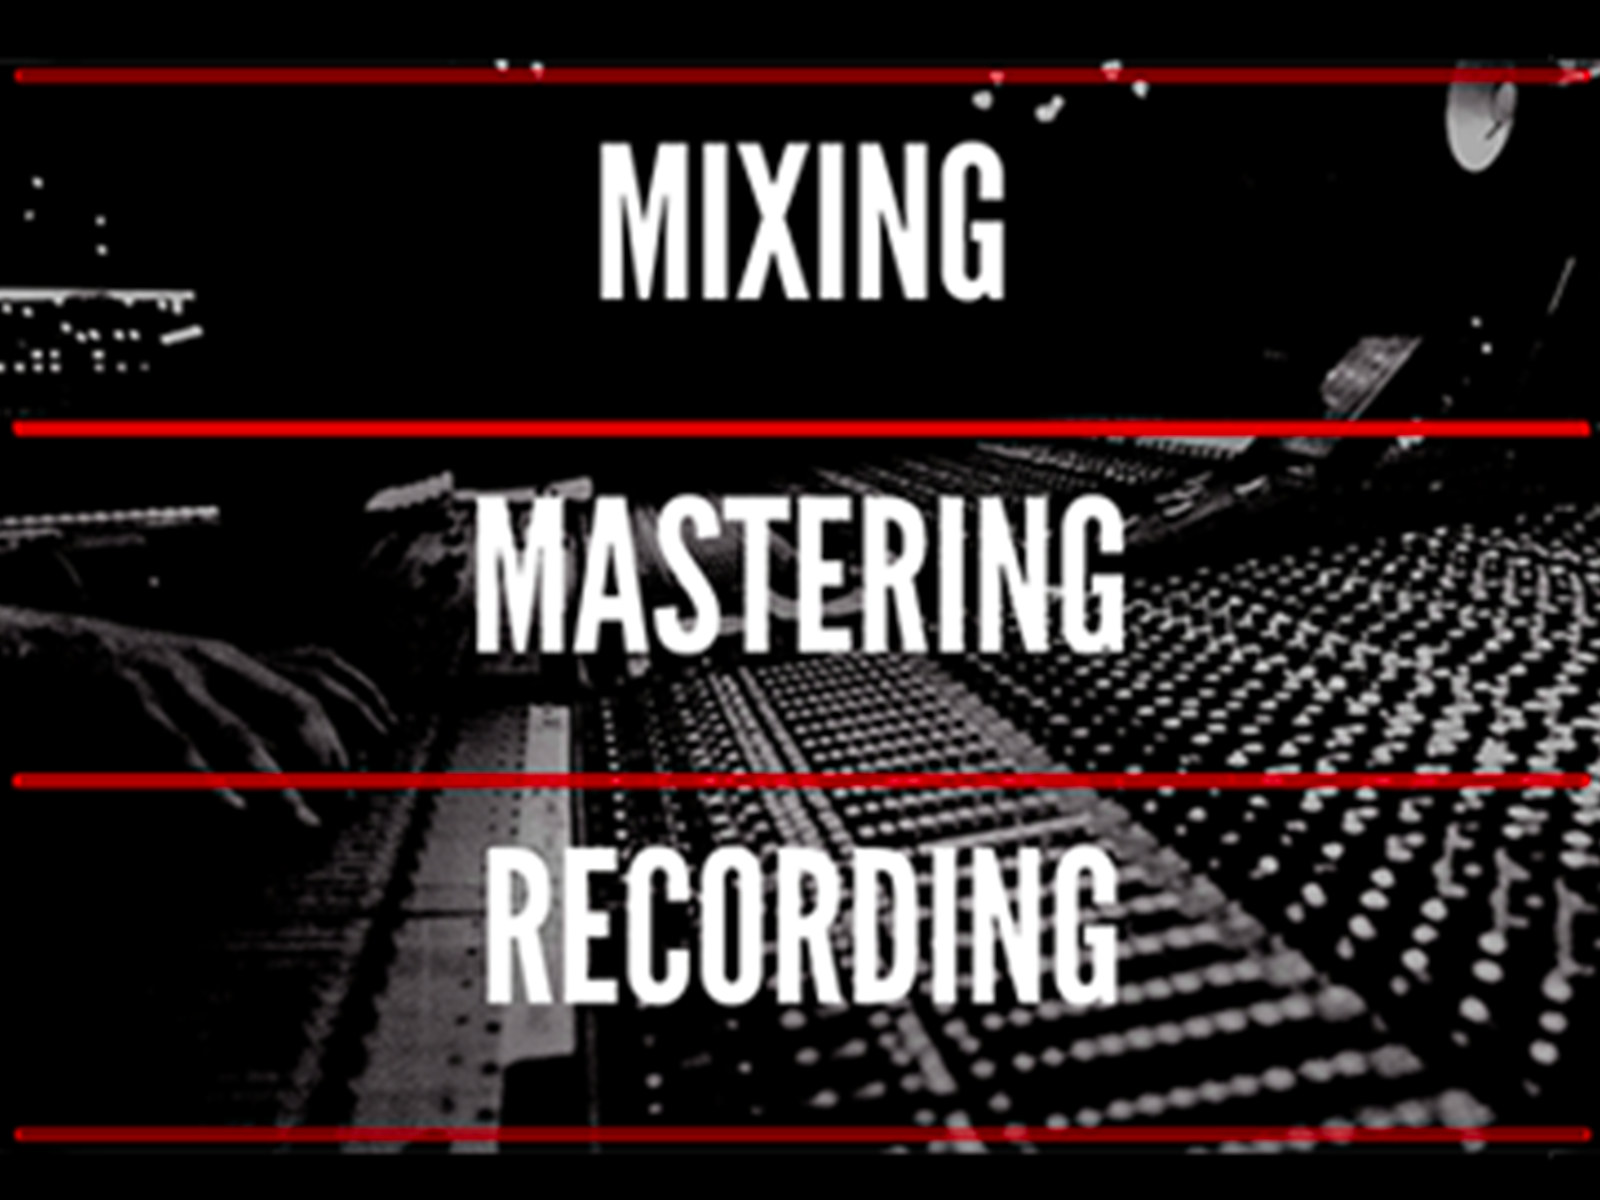 Recording, Mixing and Mastering